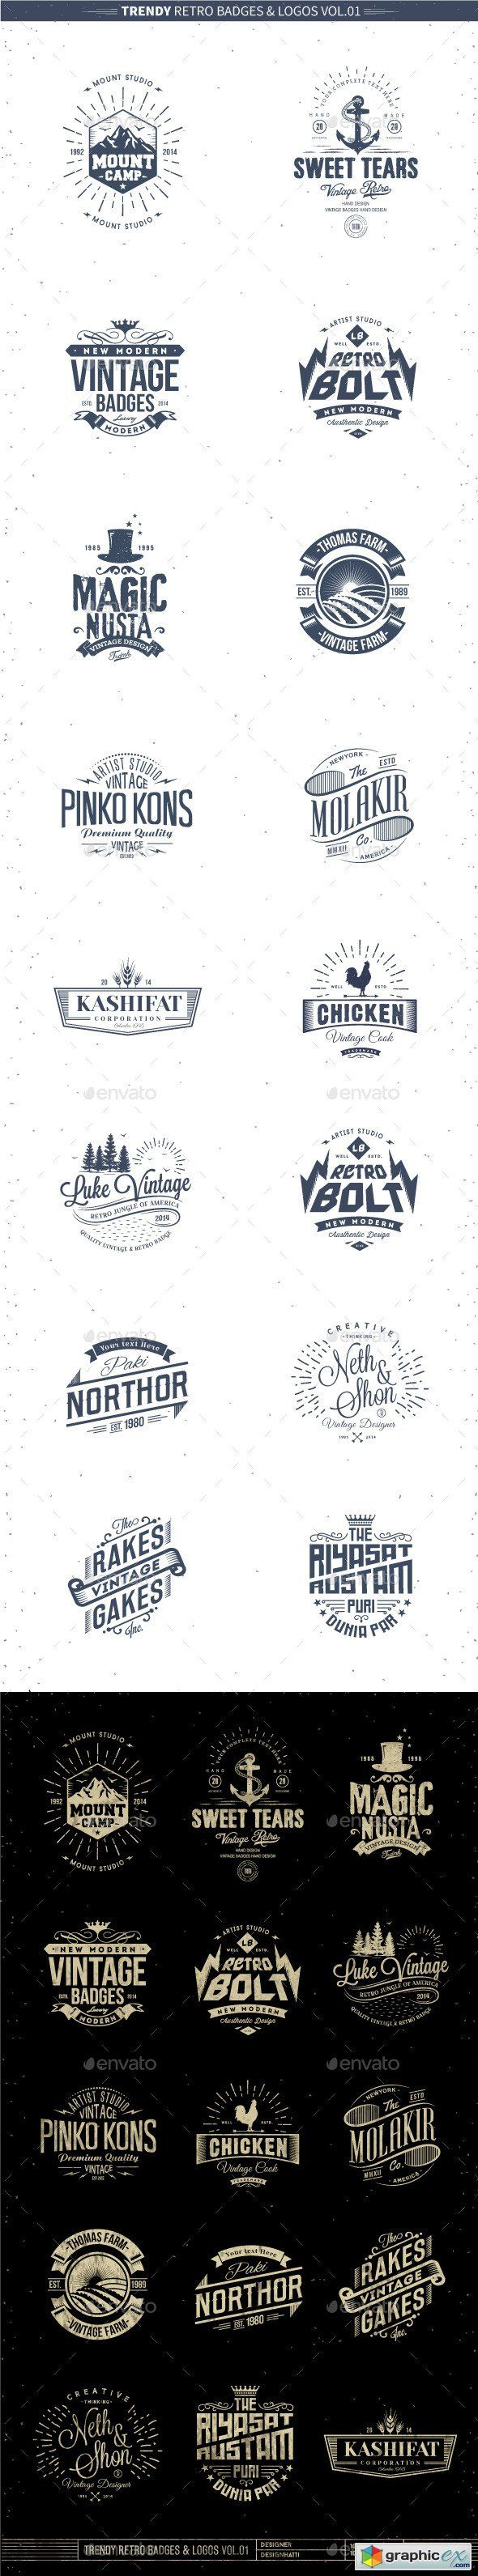 Trendy Retro Badges and Logos Vol.01